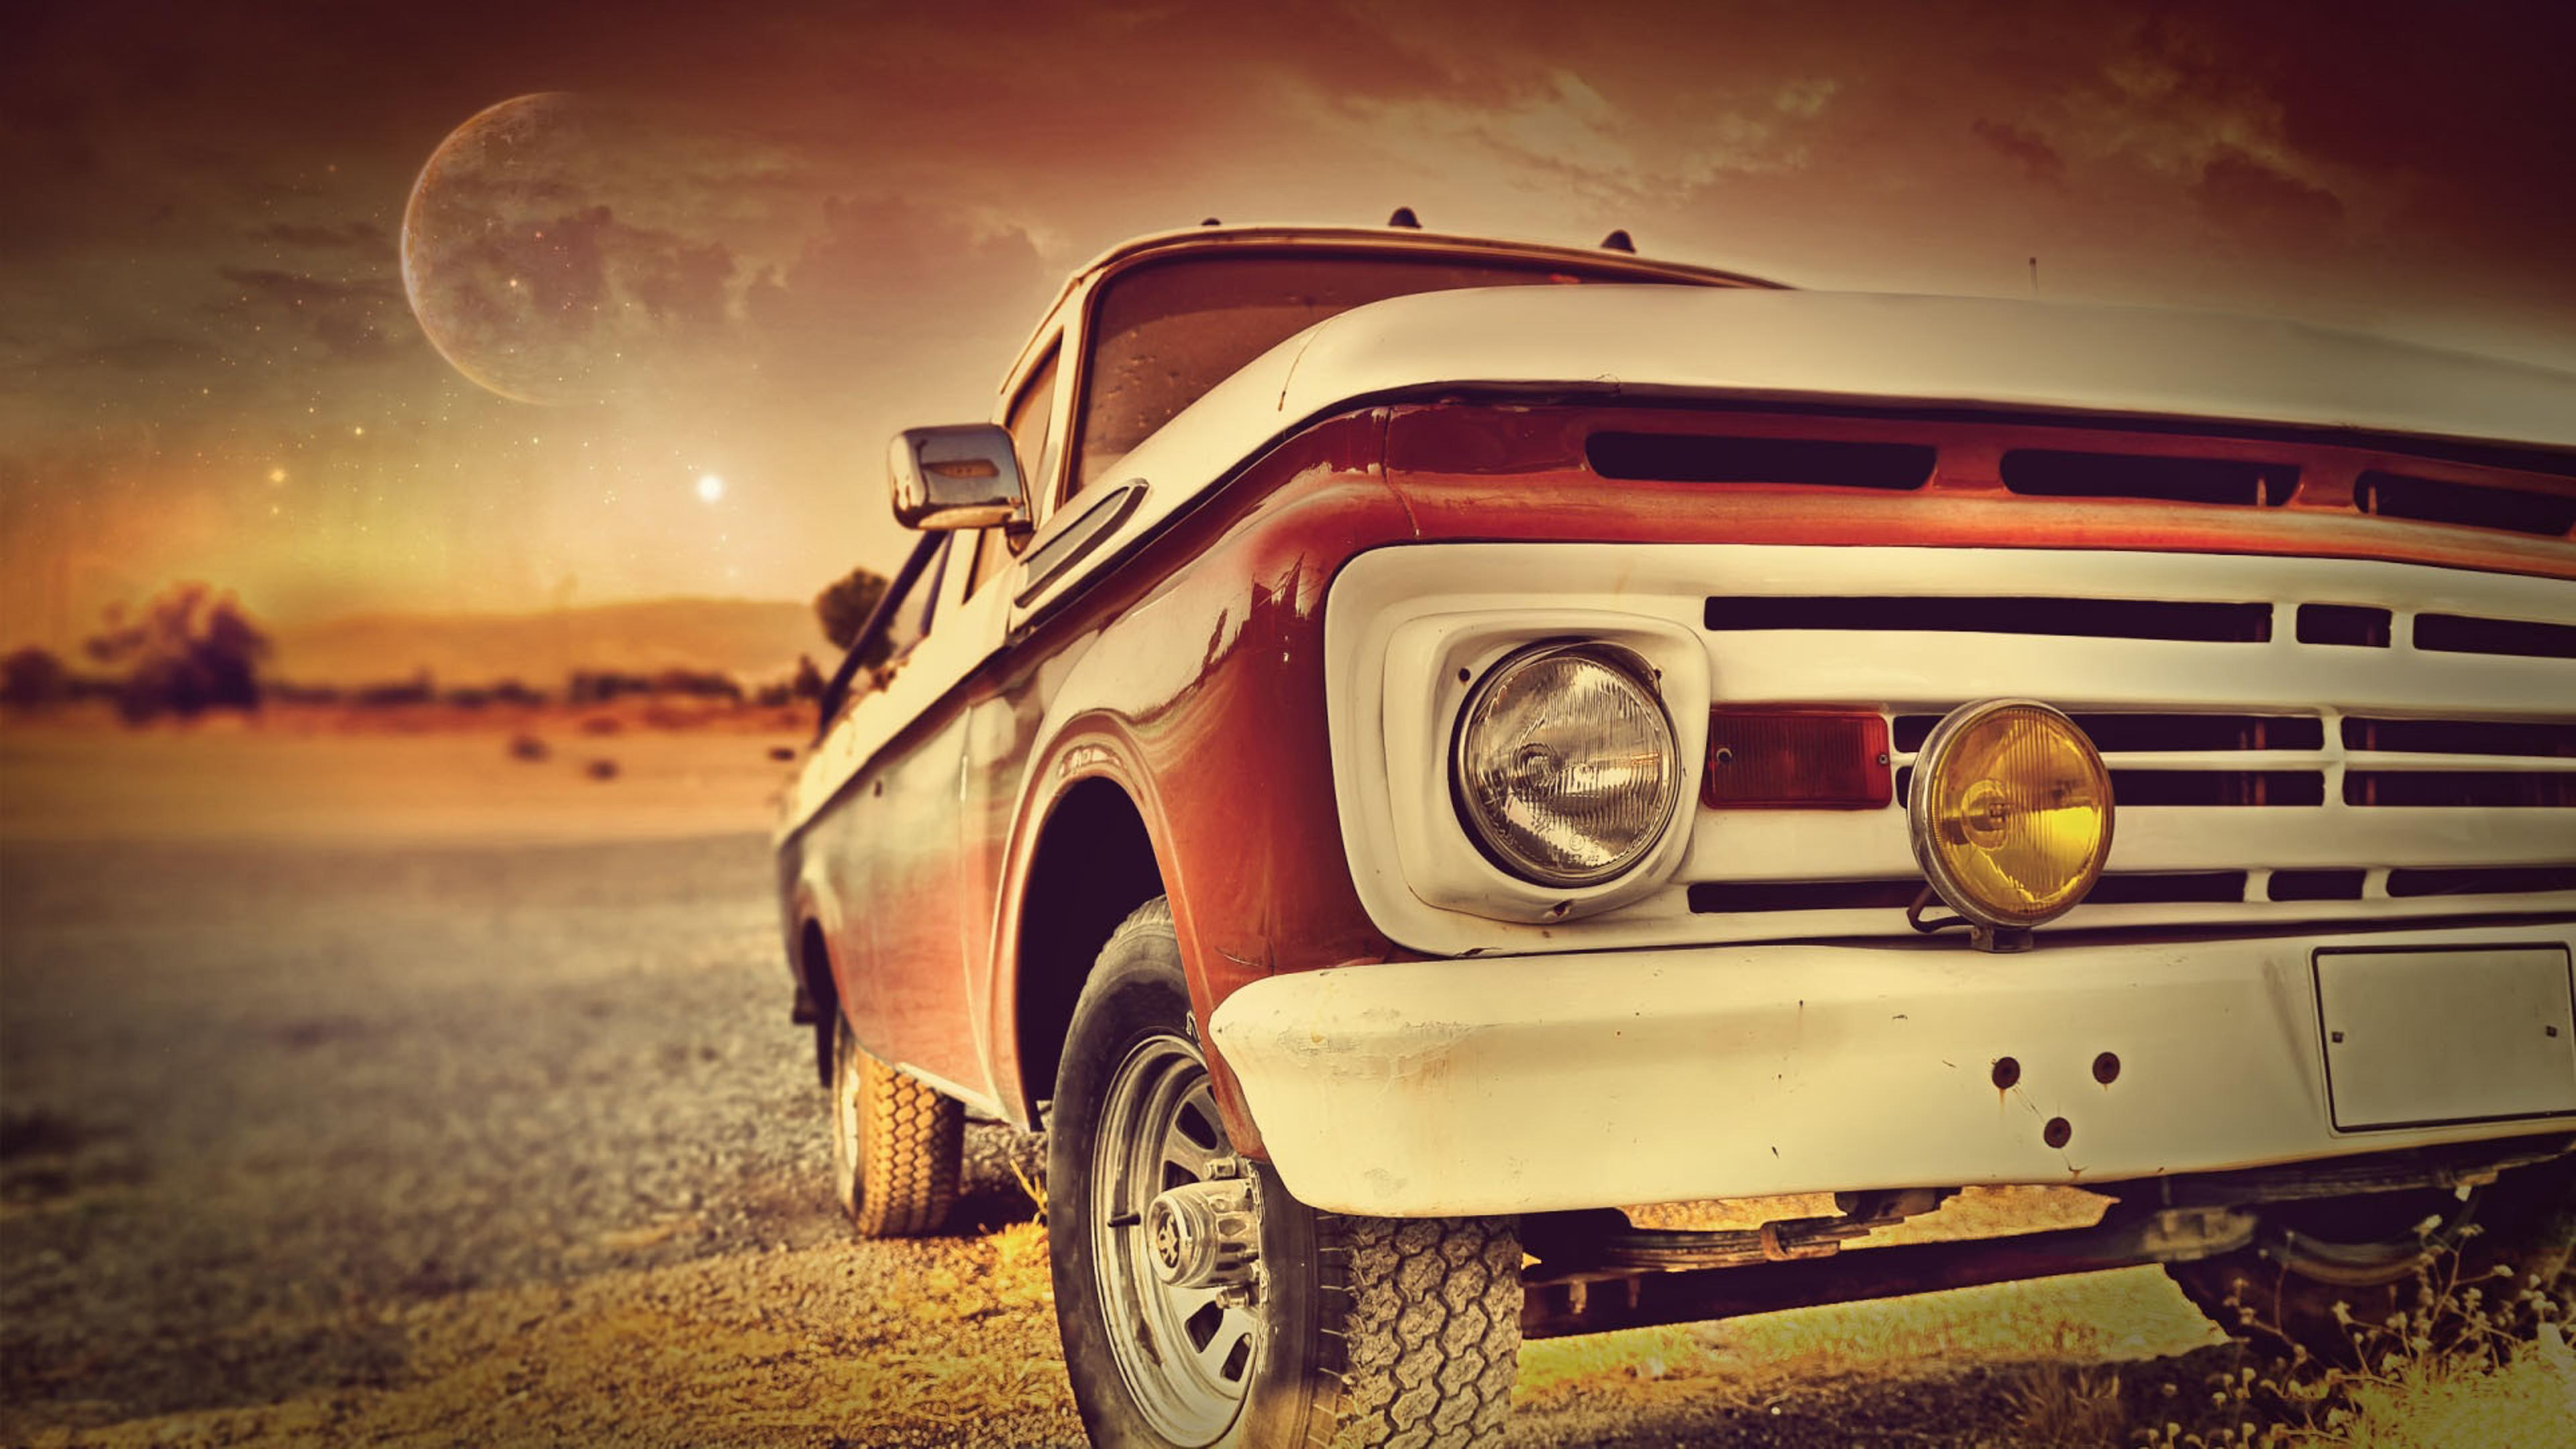 Vintage Red Car In The Sunset Hd Wallpaper Old Car